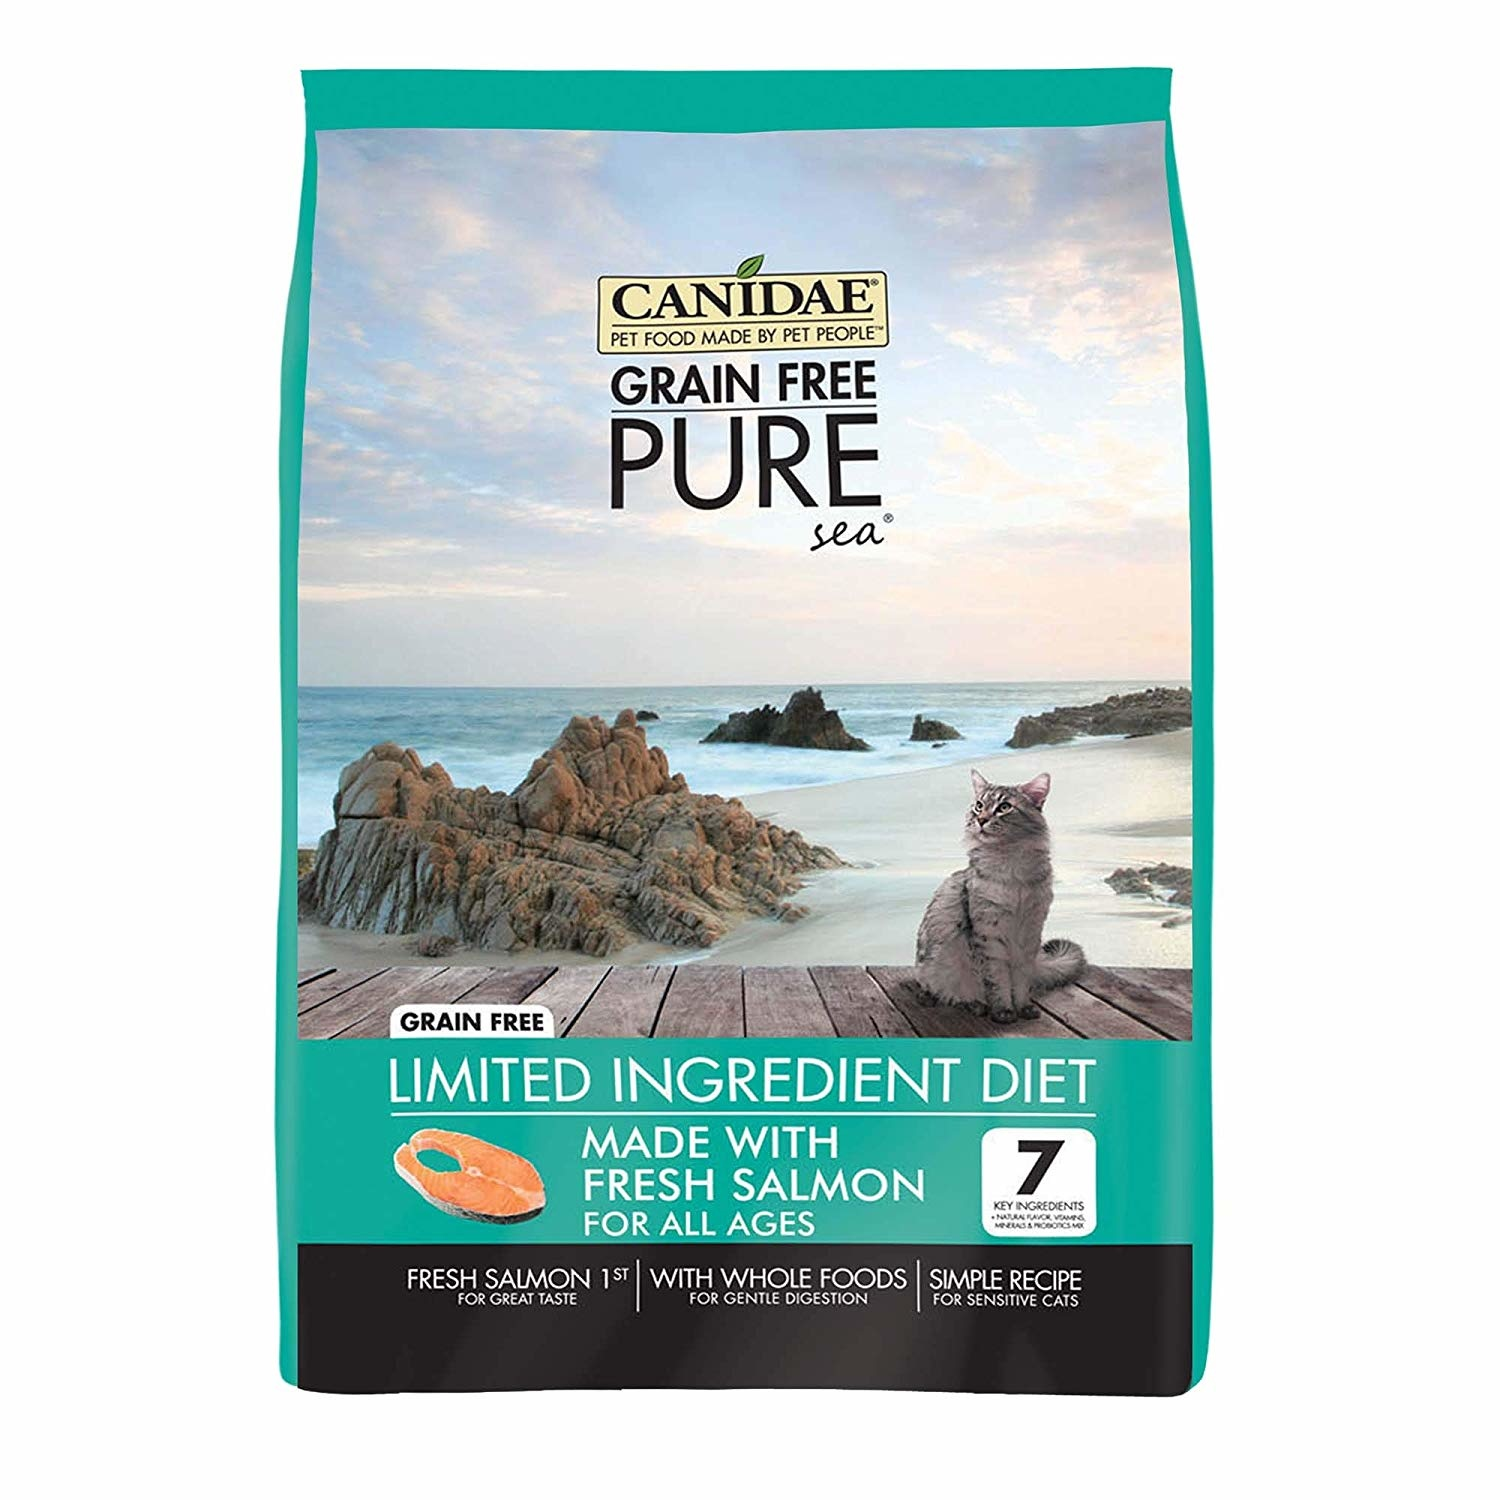 Canidae (Diamond) Canidae Cat Pure Sea 2.5 lb